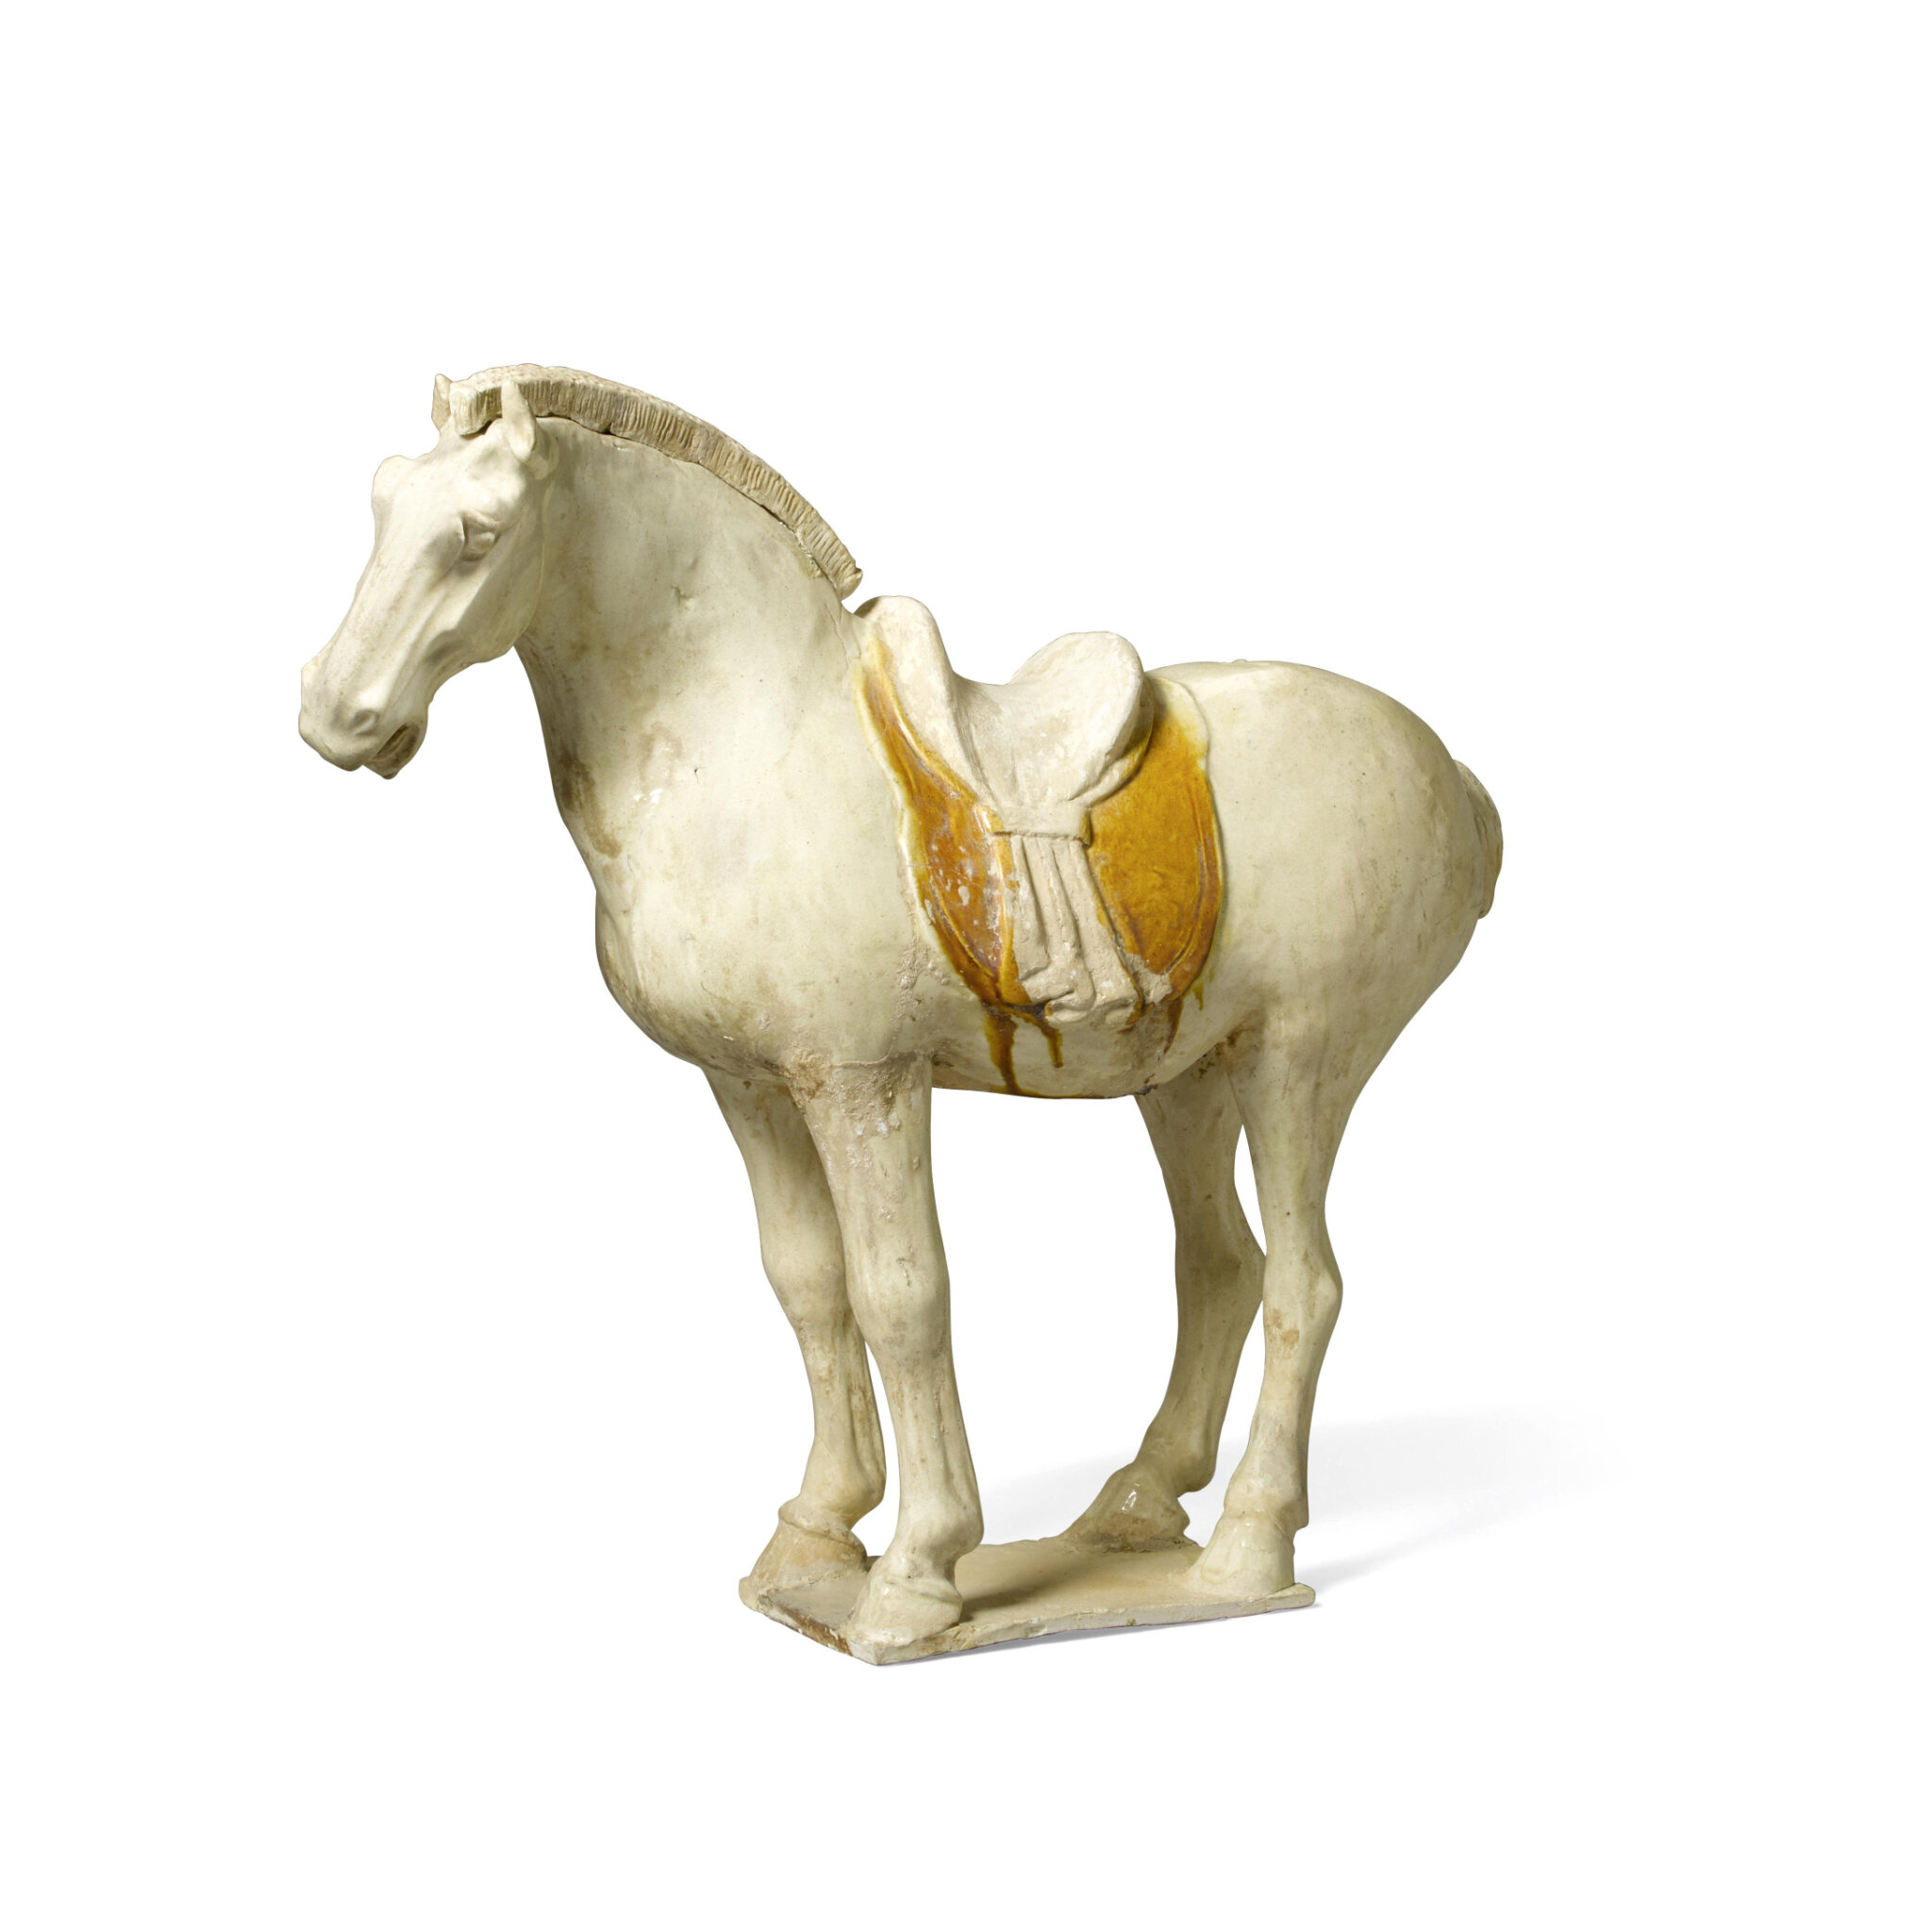 A straw and chestnut glazed pottery figure of a horse, Tang dynasty (618-907)